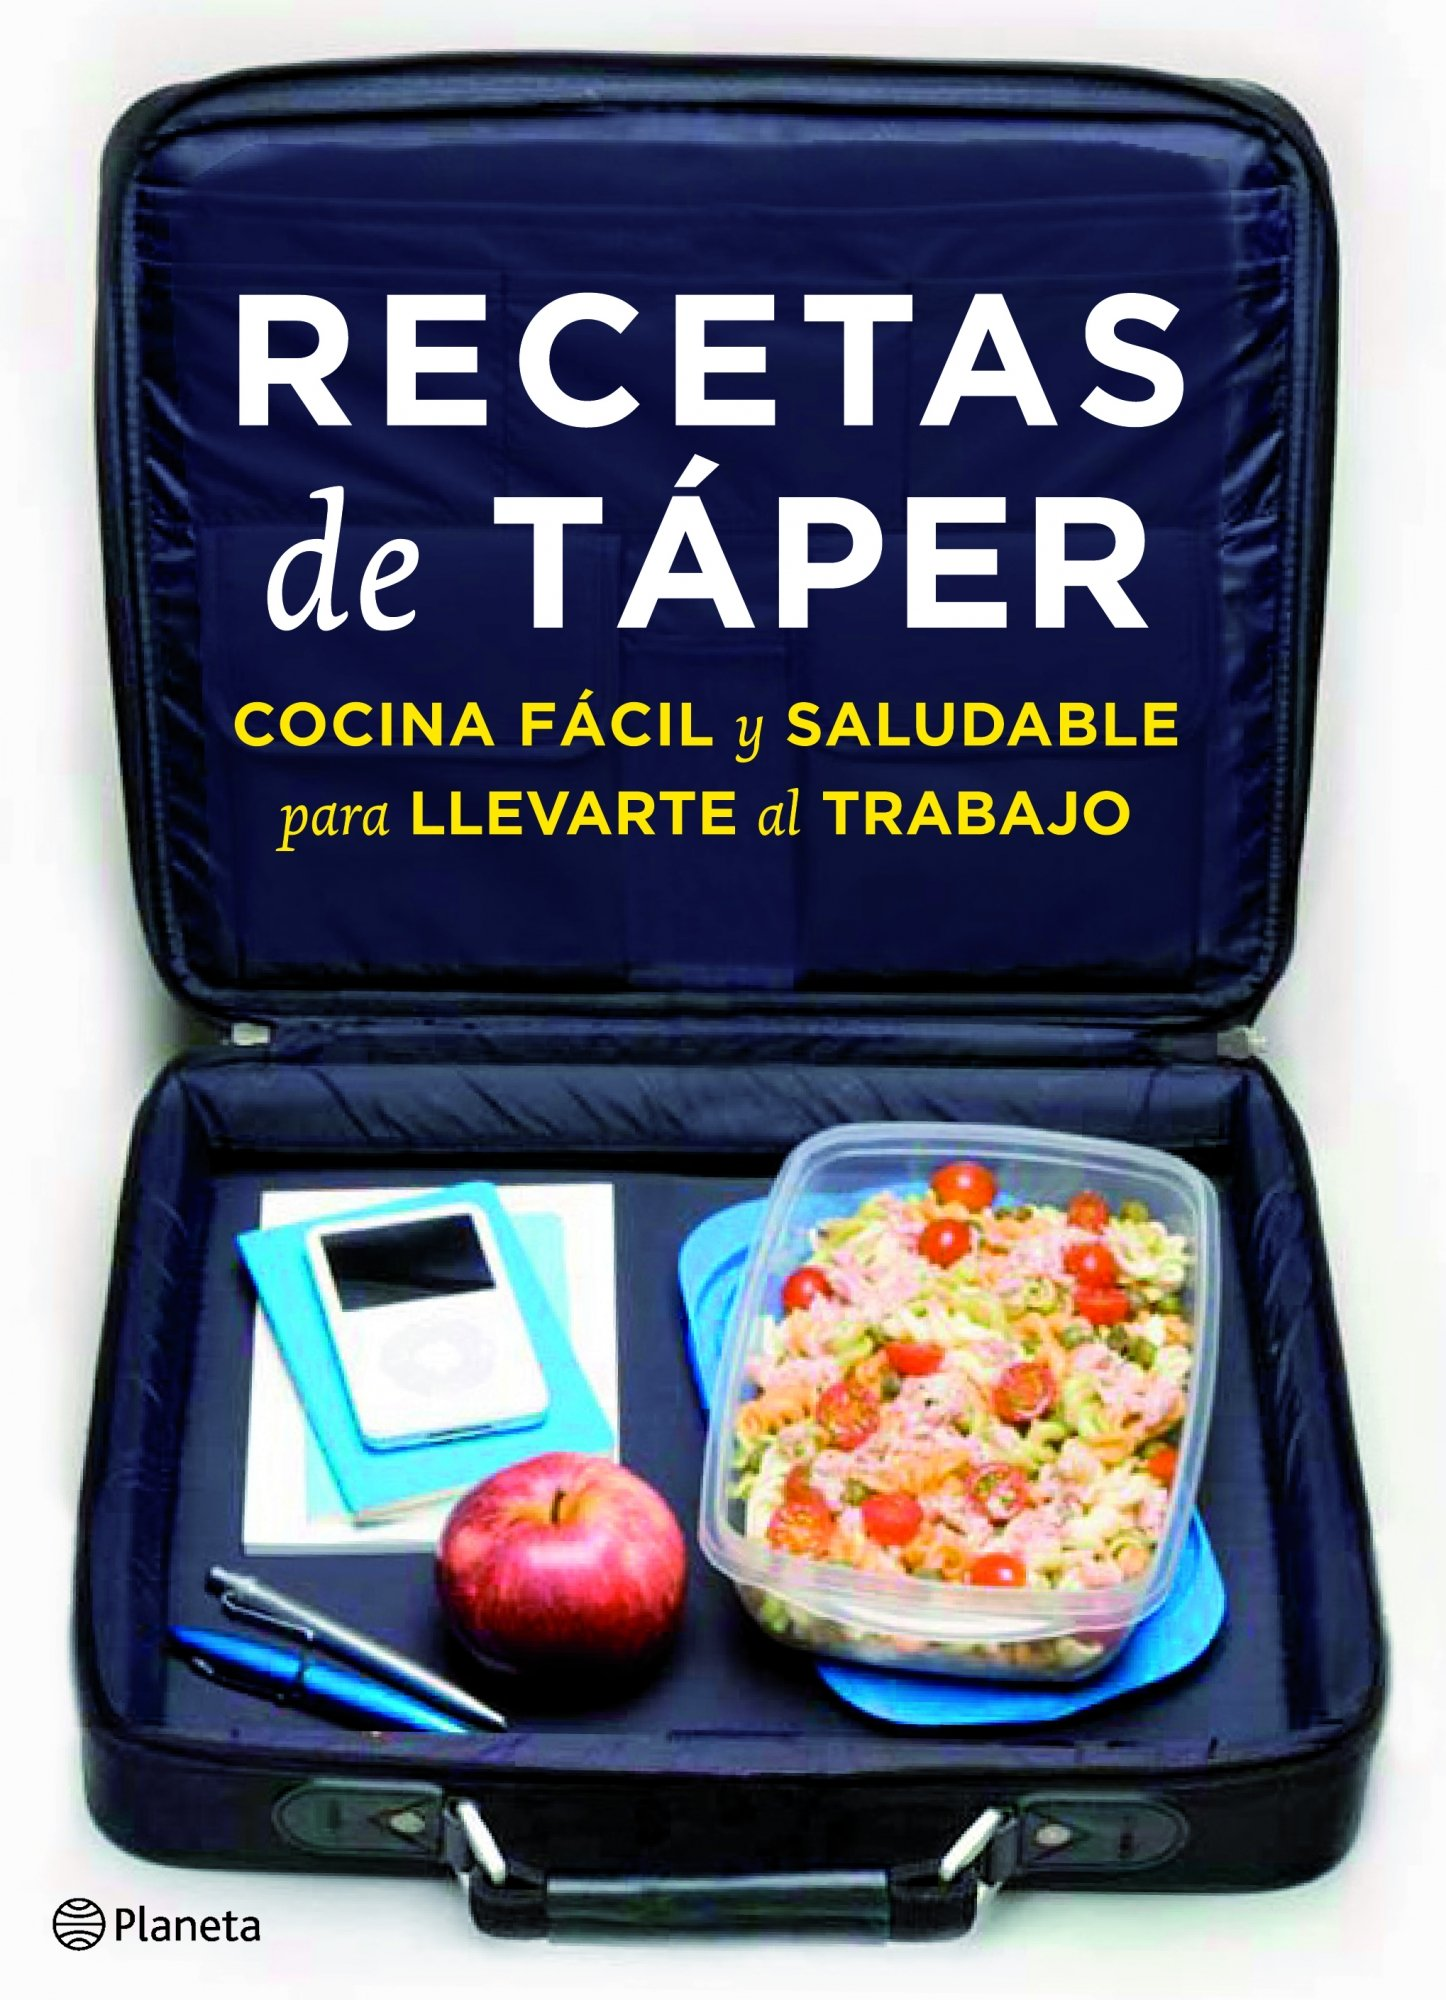 Recetas de taper (Spanish Edition): AA. VV.: 9788408088929: Amazon.com: Books